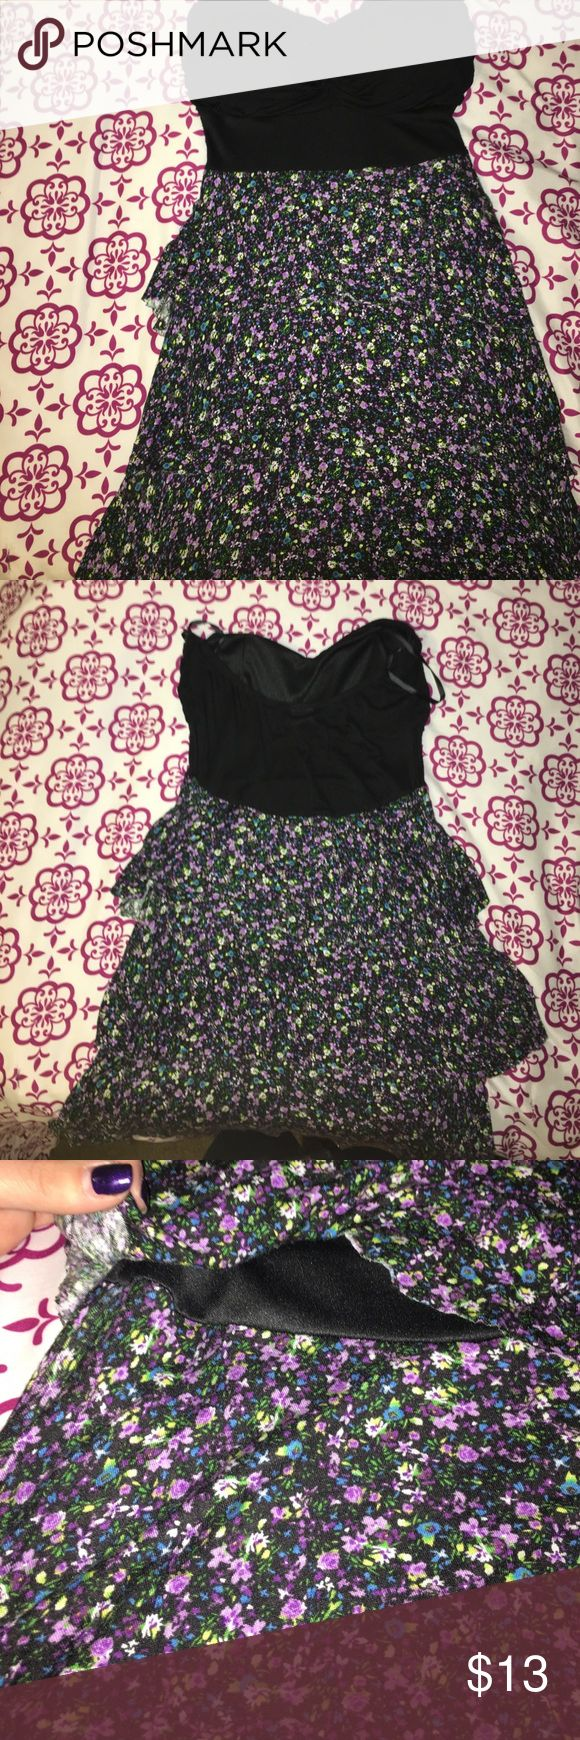 Beautiful Floral Strapless Spring Dress Strapless floral dress with a  slightly padded chest! Super cute pattern and layered flowing style! Flattering dress on anyone! Deb Dresses Strapless